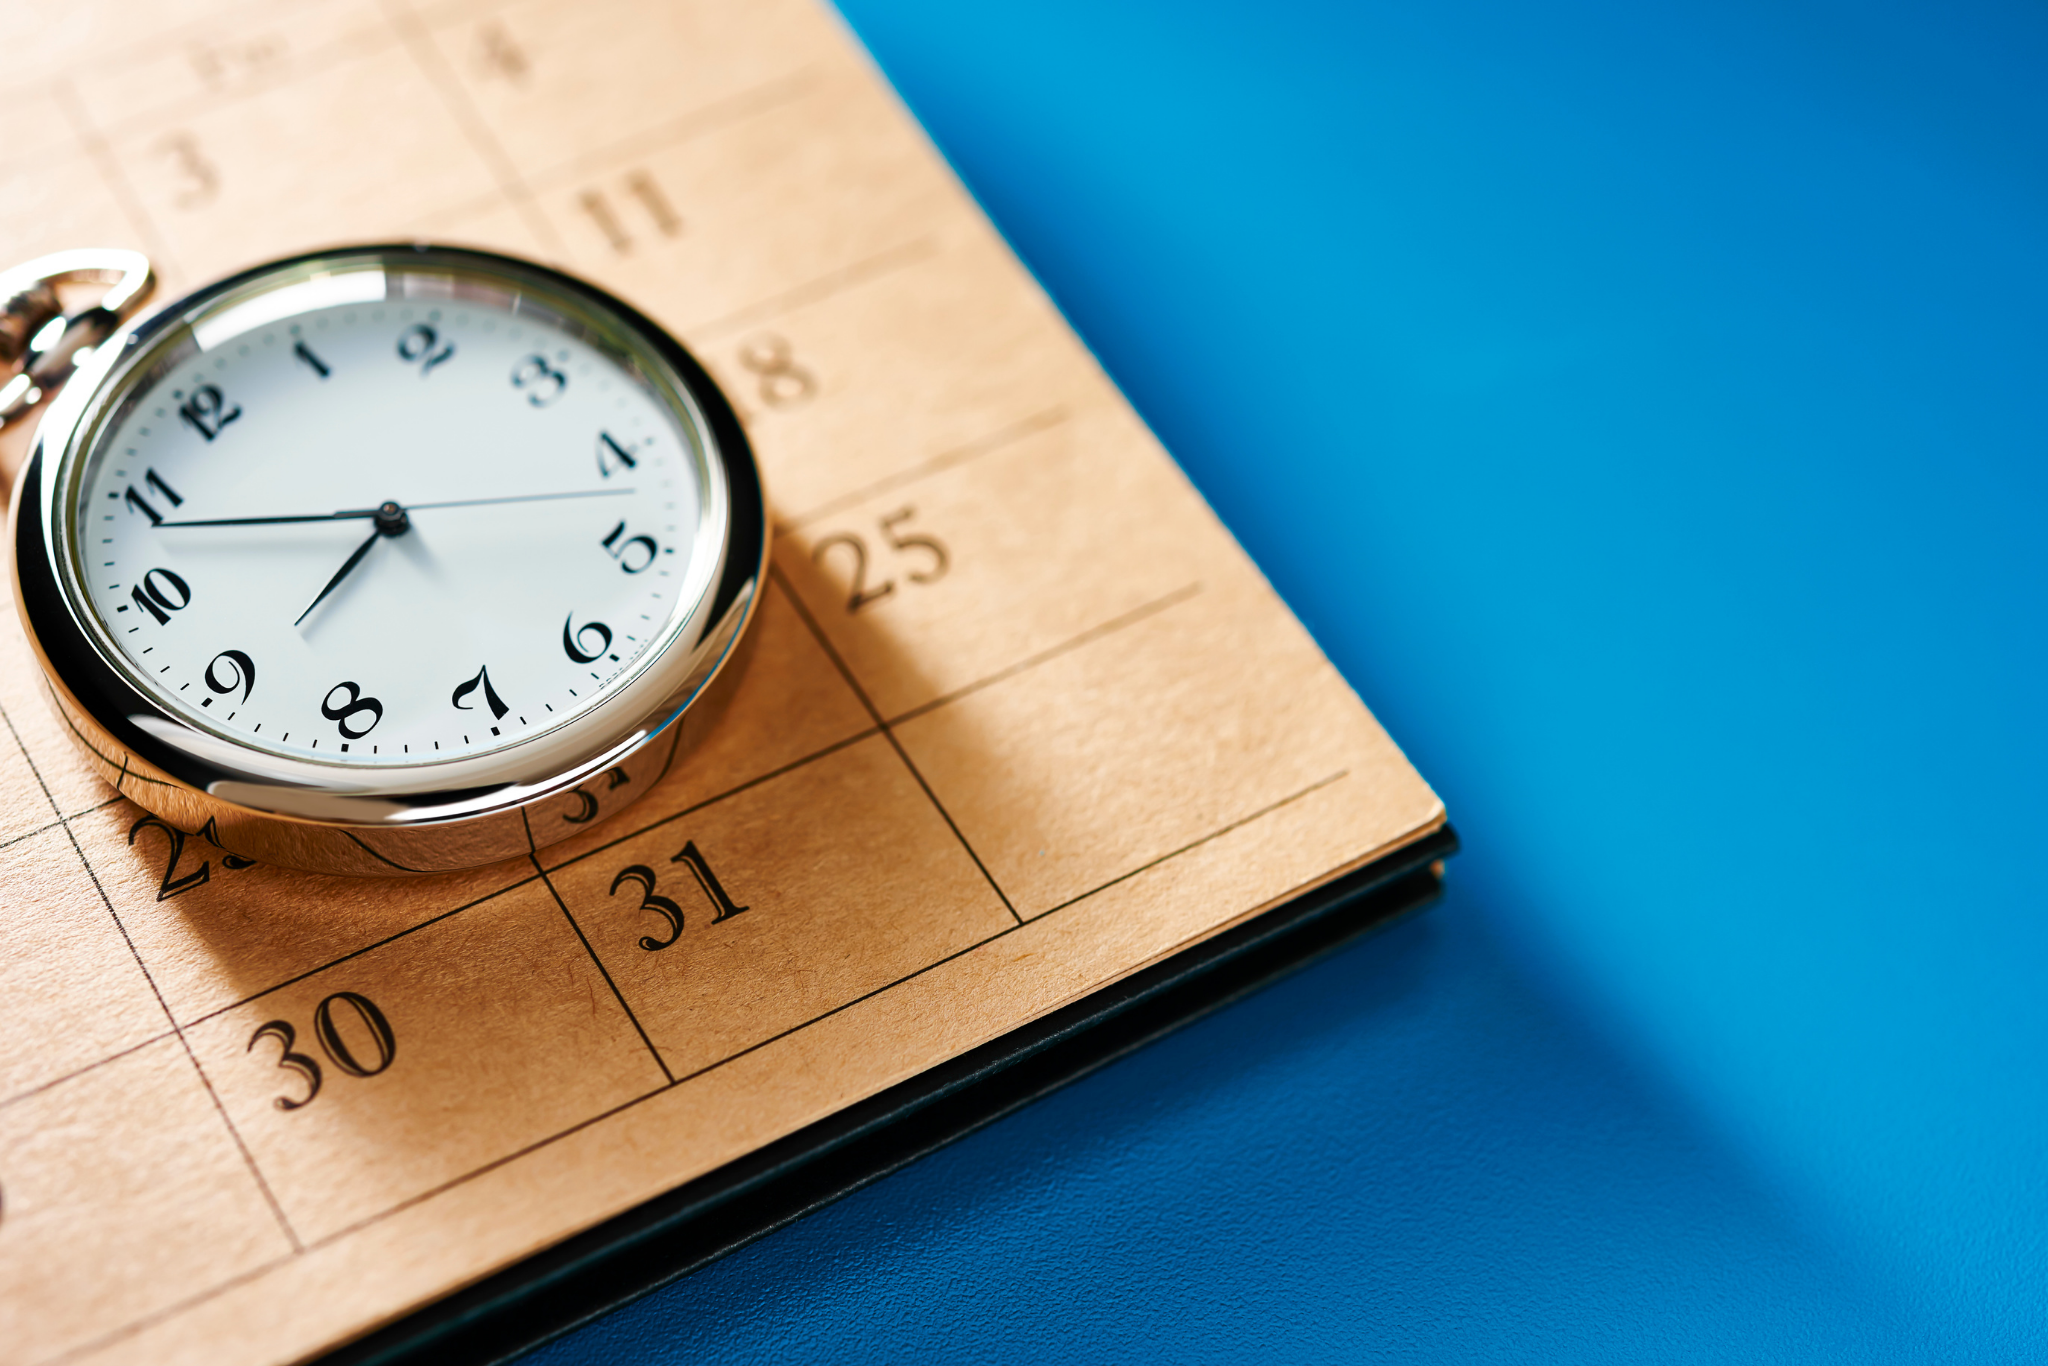 The IRS Extends Additional Tax Deadlines for IRAs, HSAs, and More